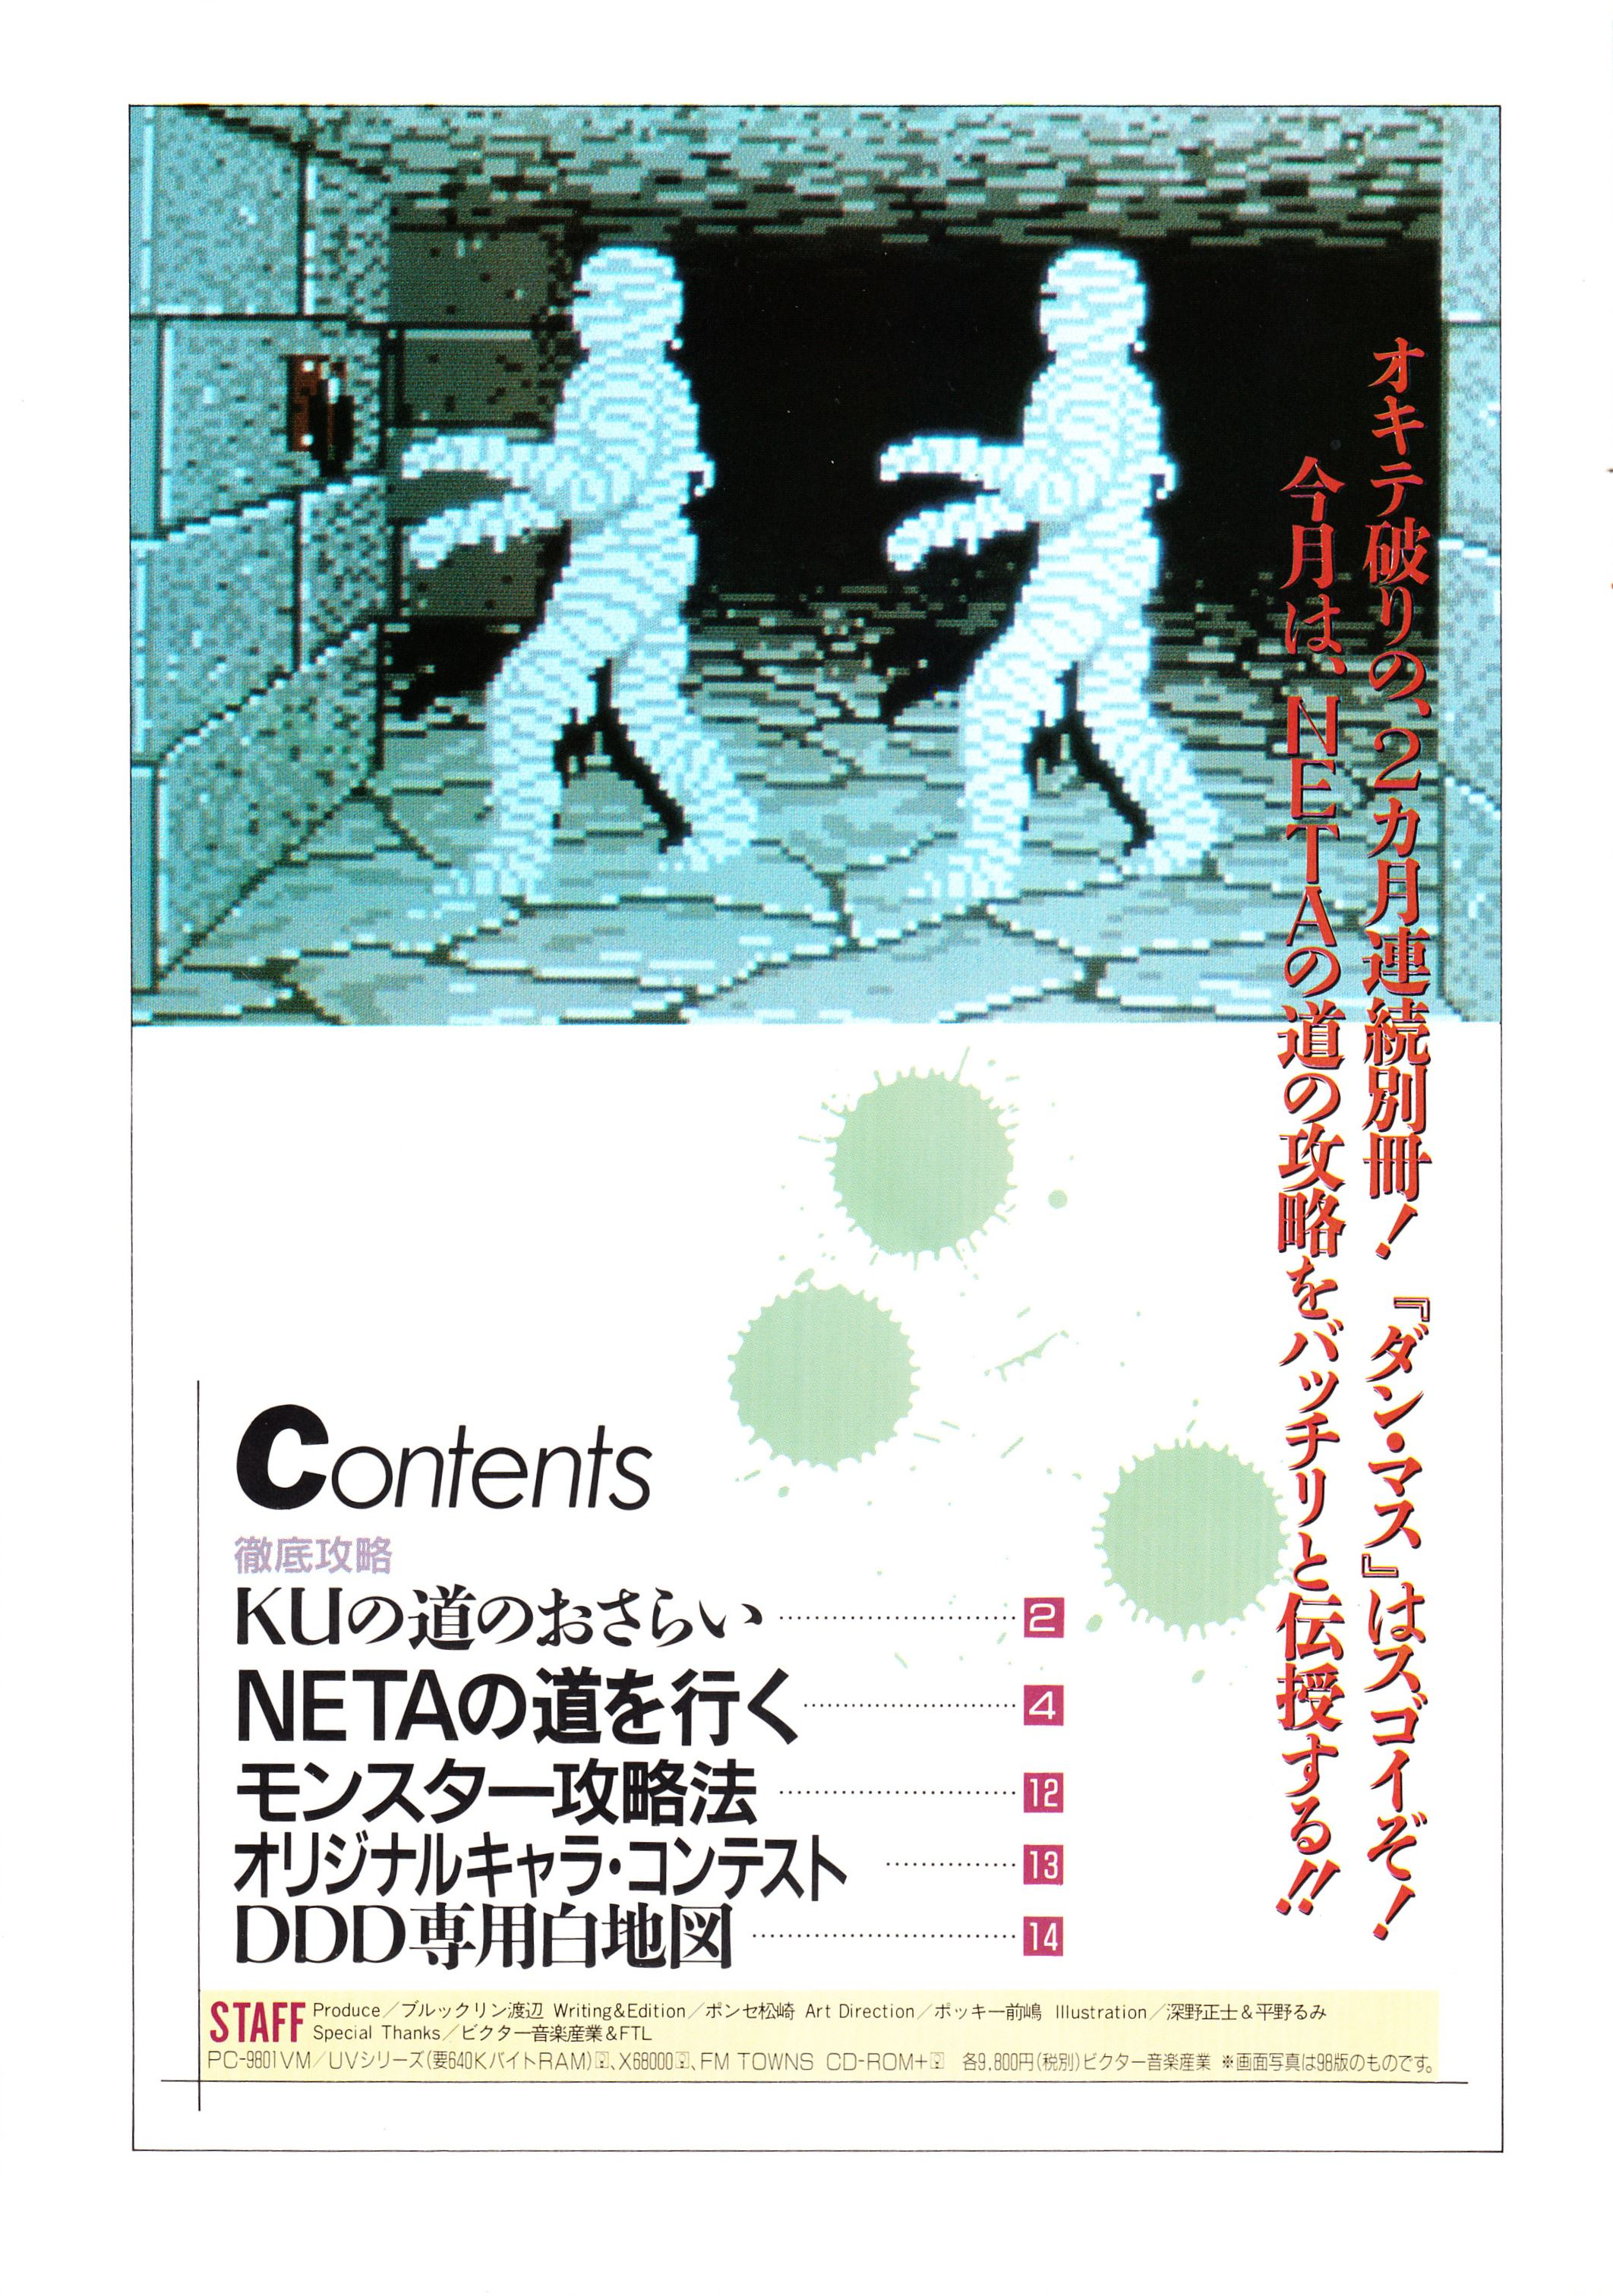 Supplement - Chaos Strikes Back Companion Guide II Guide published in Japanese magazine 'Popcom', Vol 9 No 3 01 March 1991, Page 2